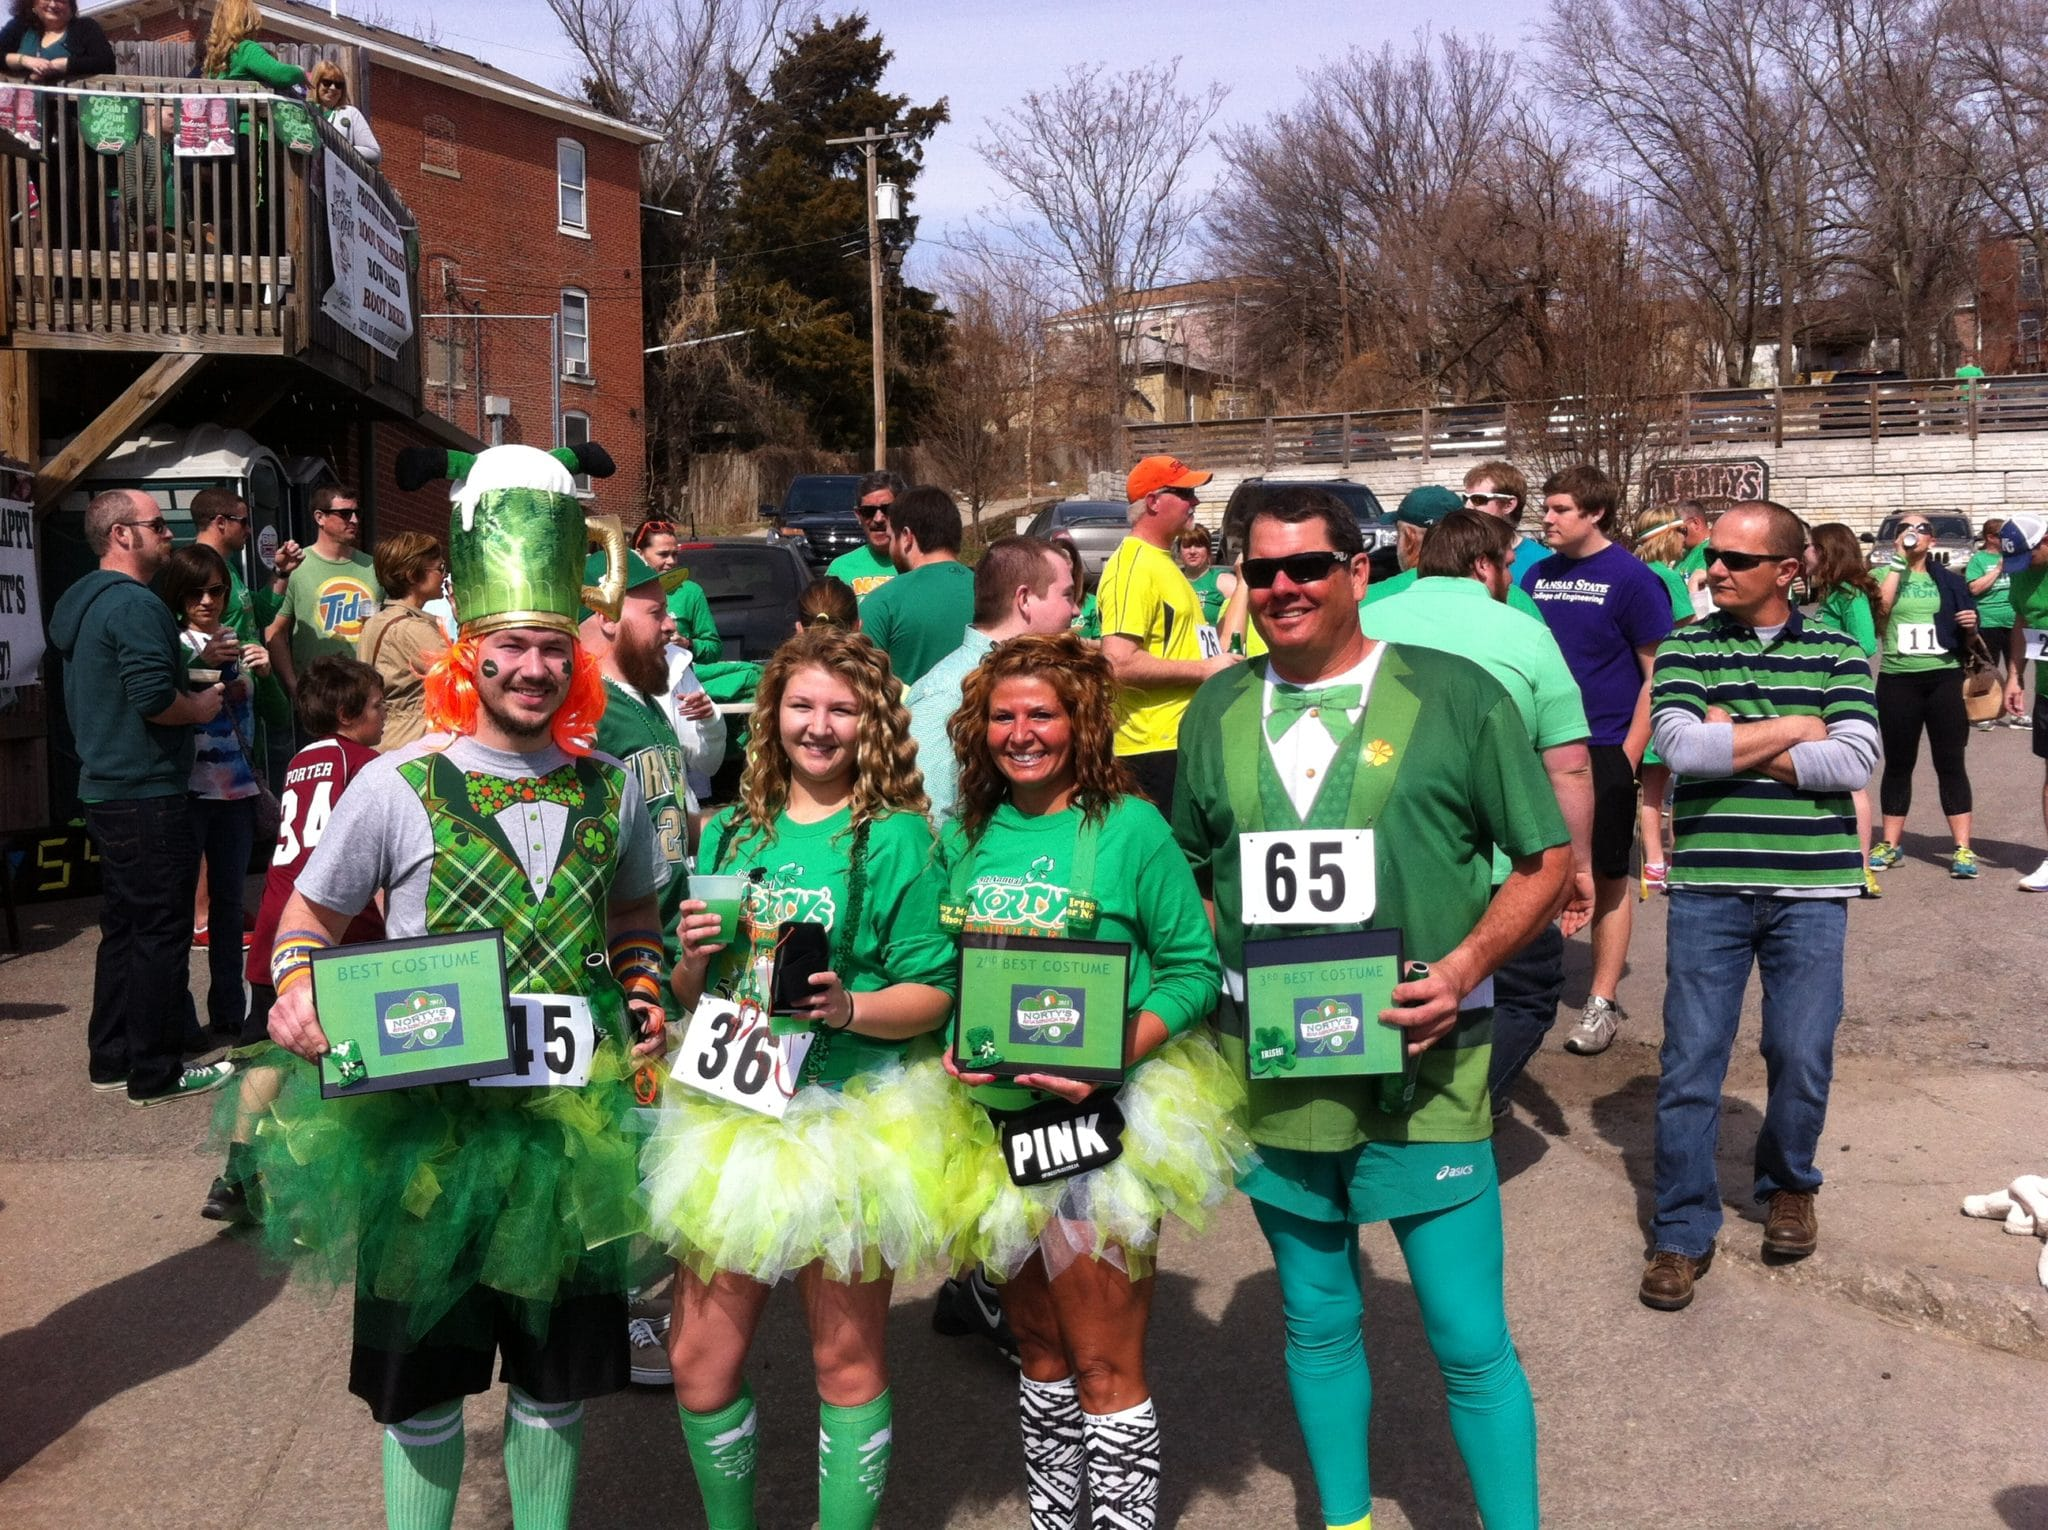 A group of people in green St. Patrick's gear pose for a photo